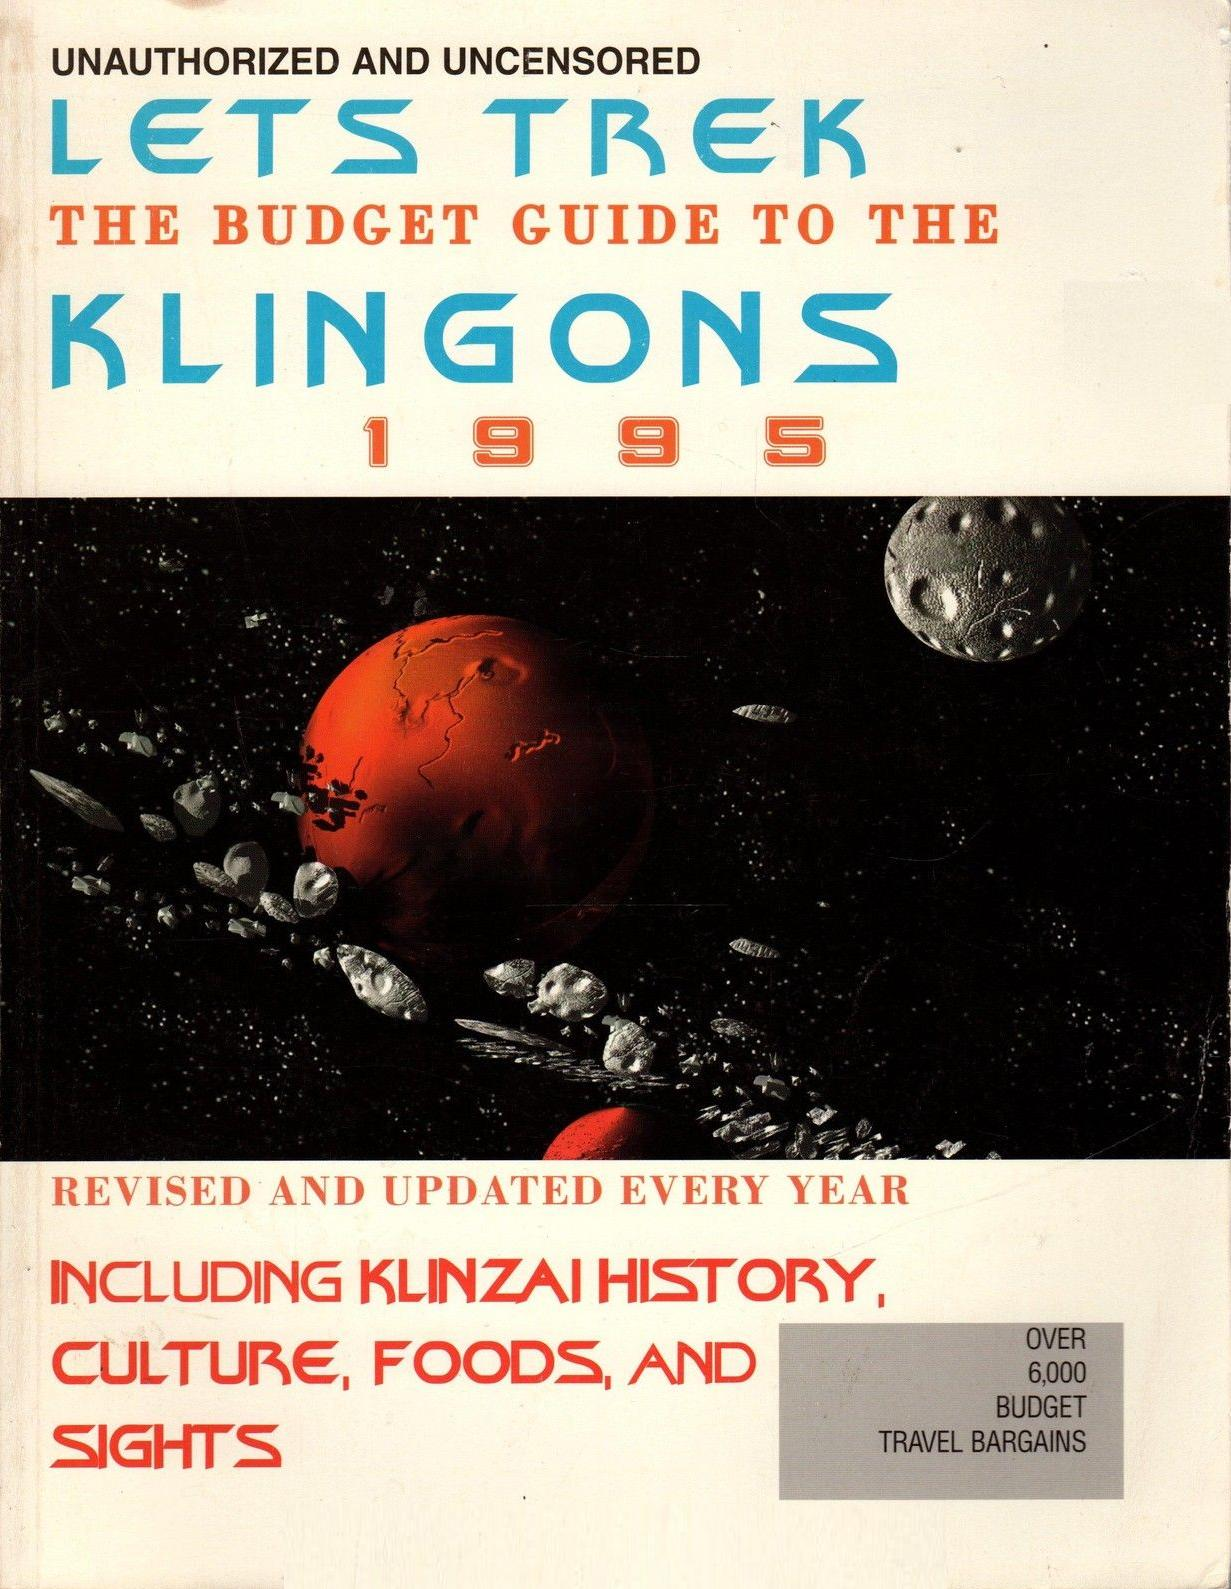 Let's Trek The Budget Guide to the Klingons 1995.jpg